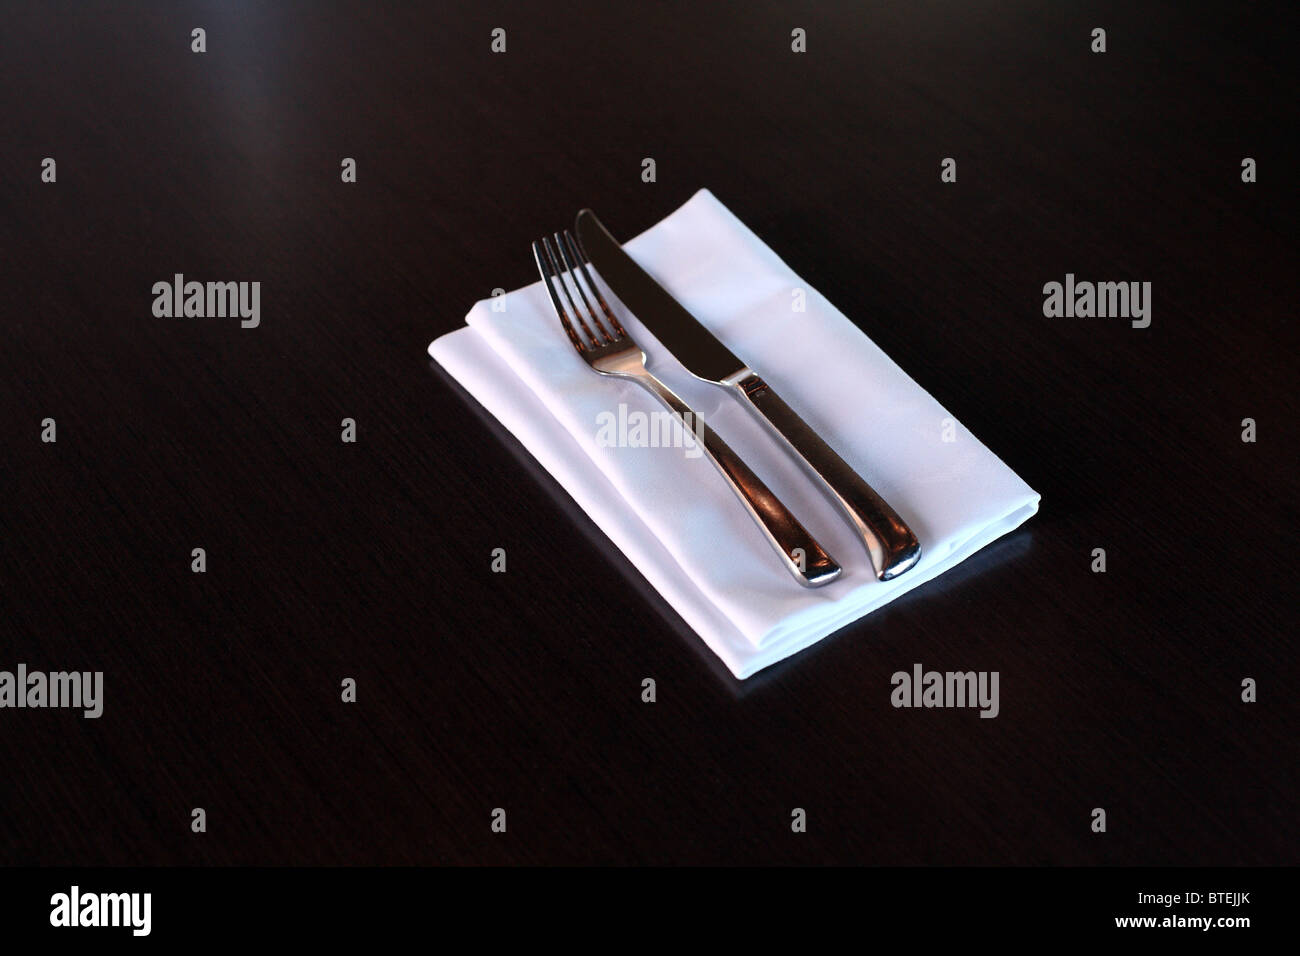 Modern restaurant table setting - Stock Photo Knife Fork Steel Eating Cutlery Utensils Modern Napkin White Restaurant Table Setting